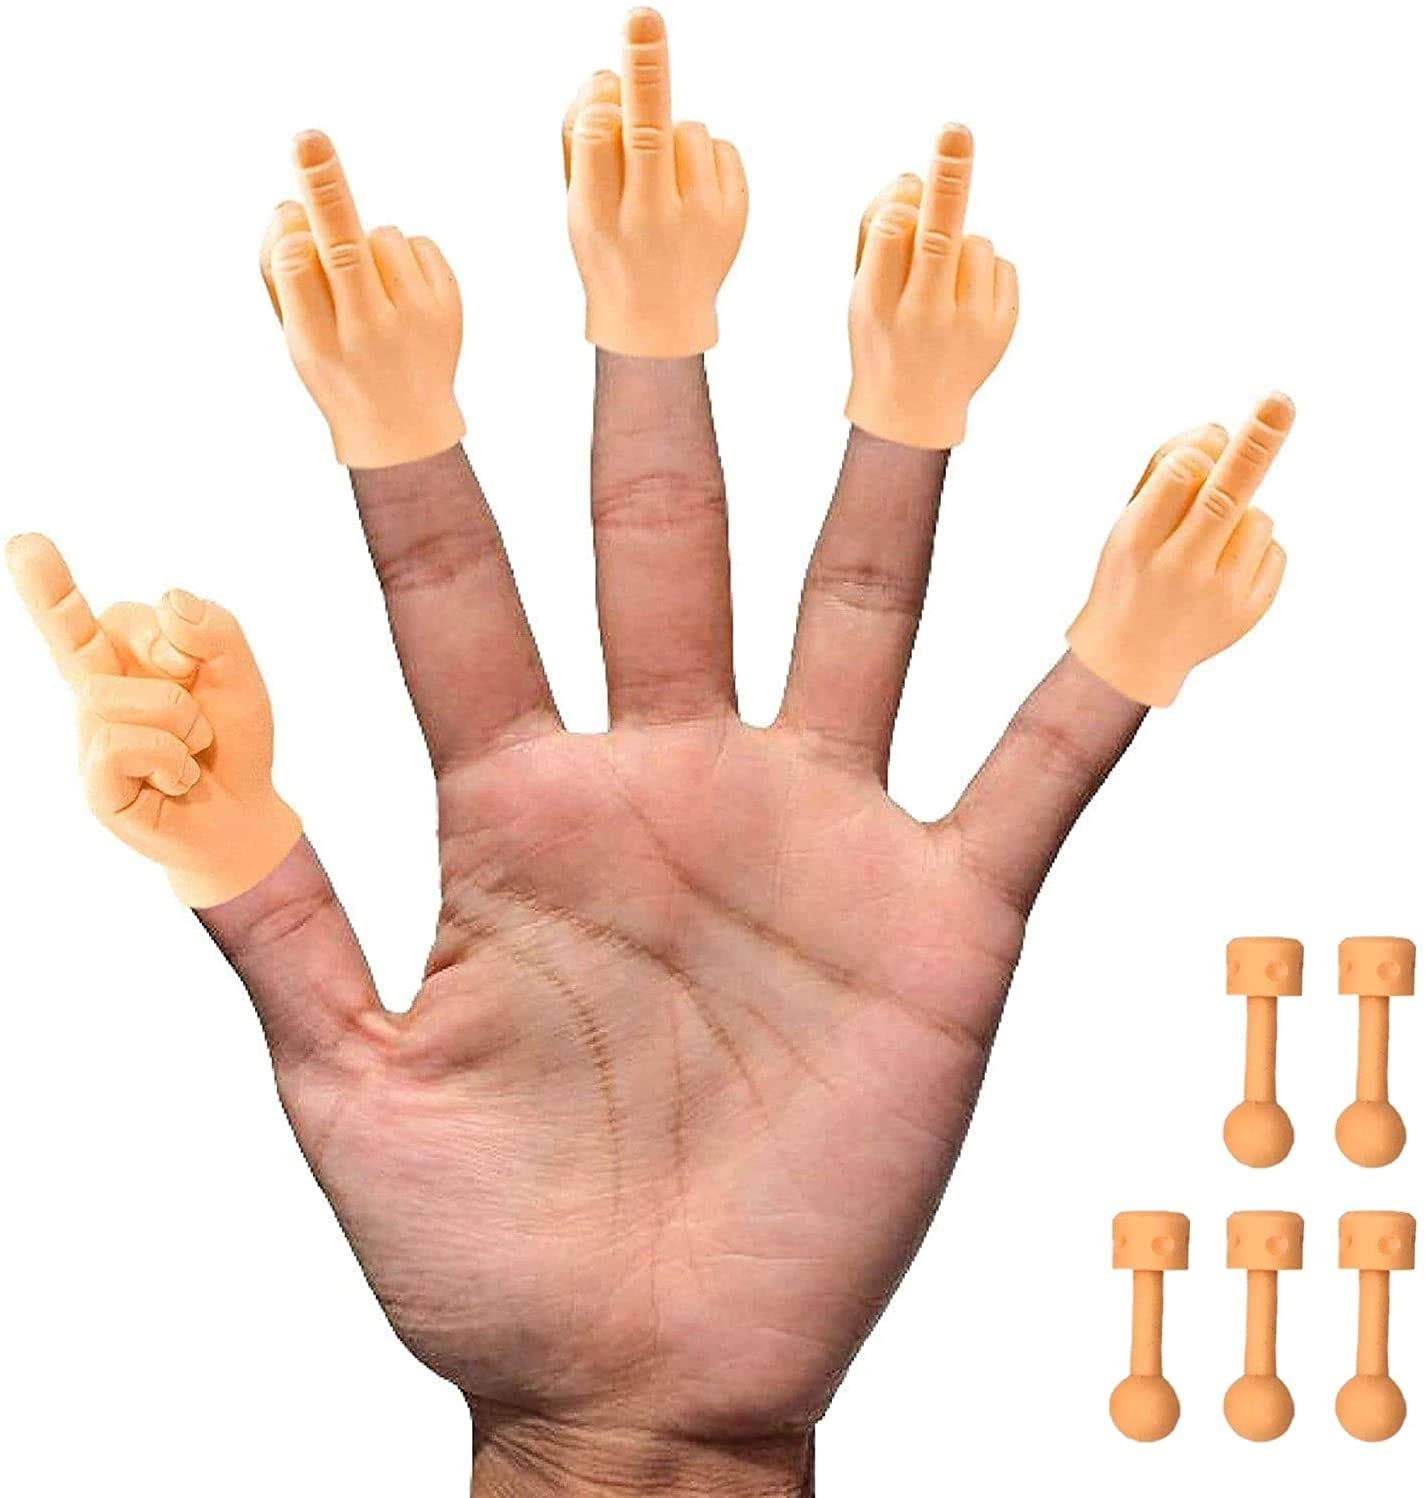 Daily Portable Tiny Hands (Middle Finger Sign) - 5 Pack - MFU Style Mini Hand Puppet + 5X Bonus Holding Sticks